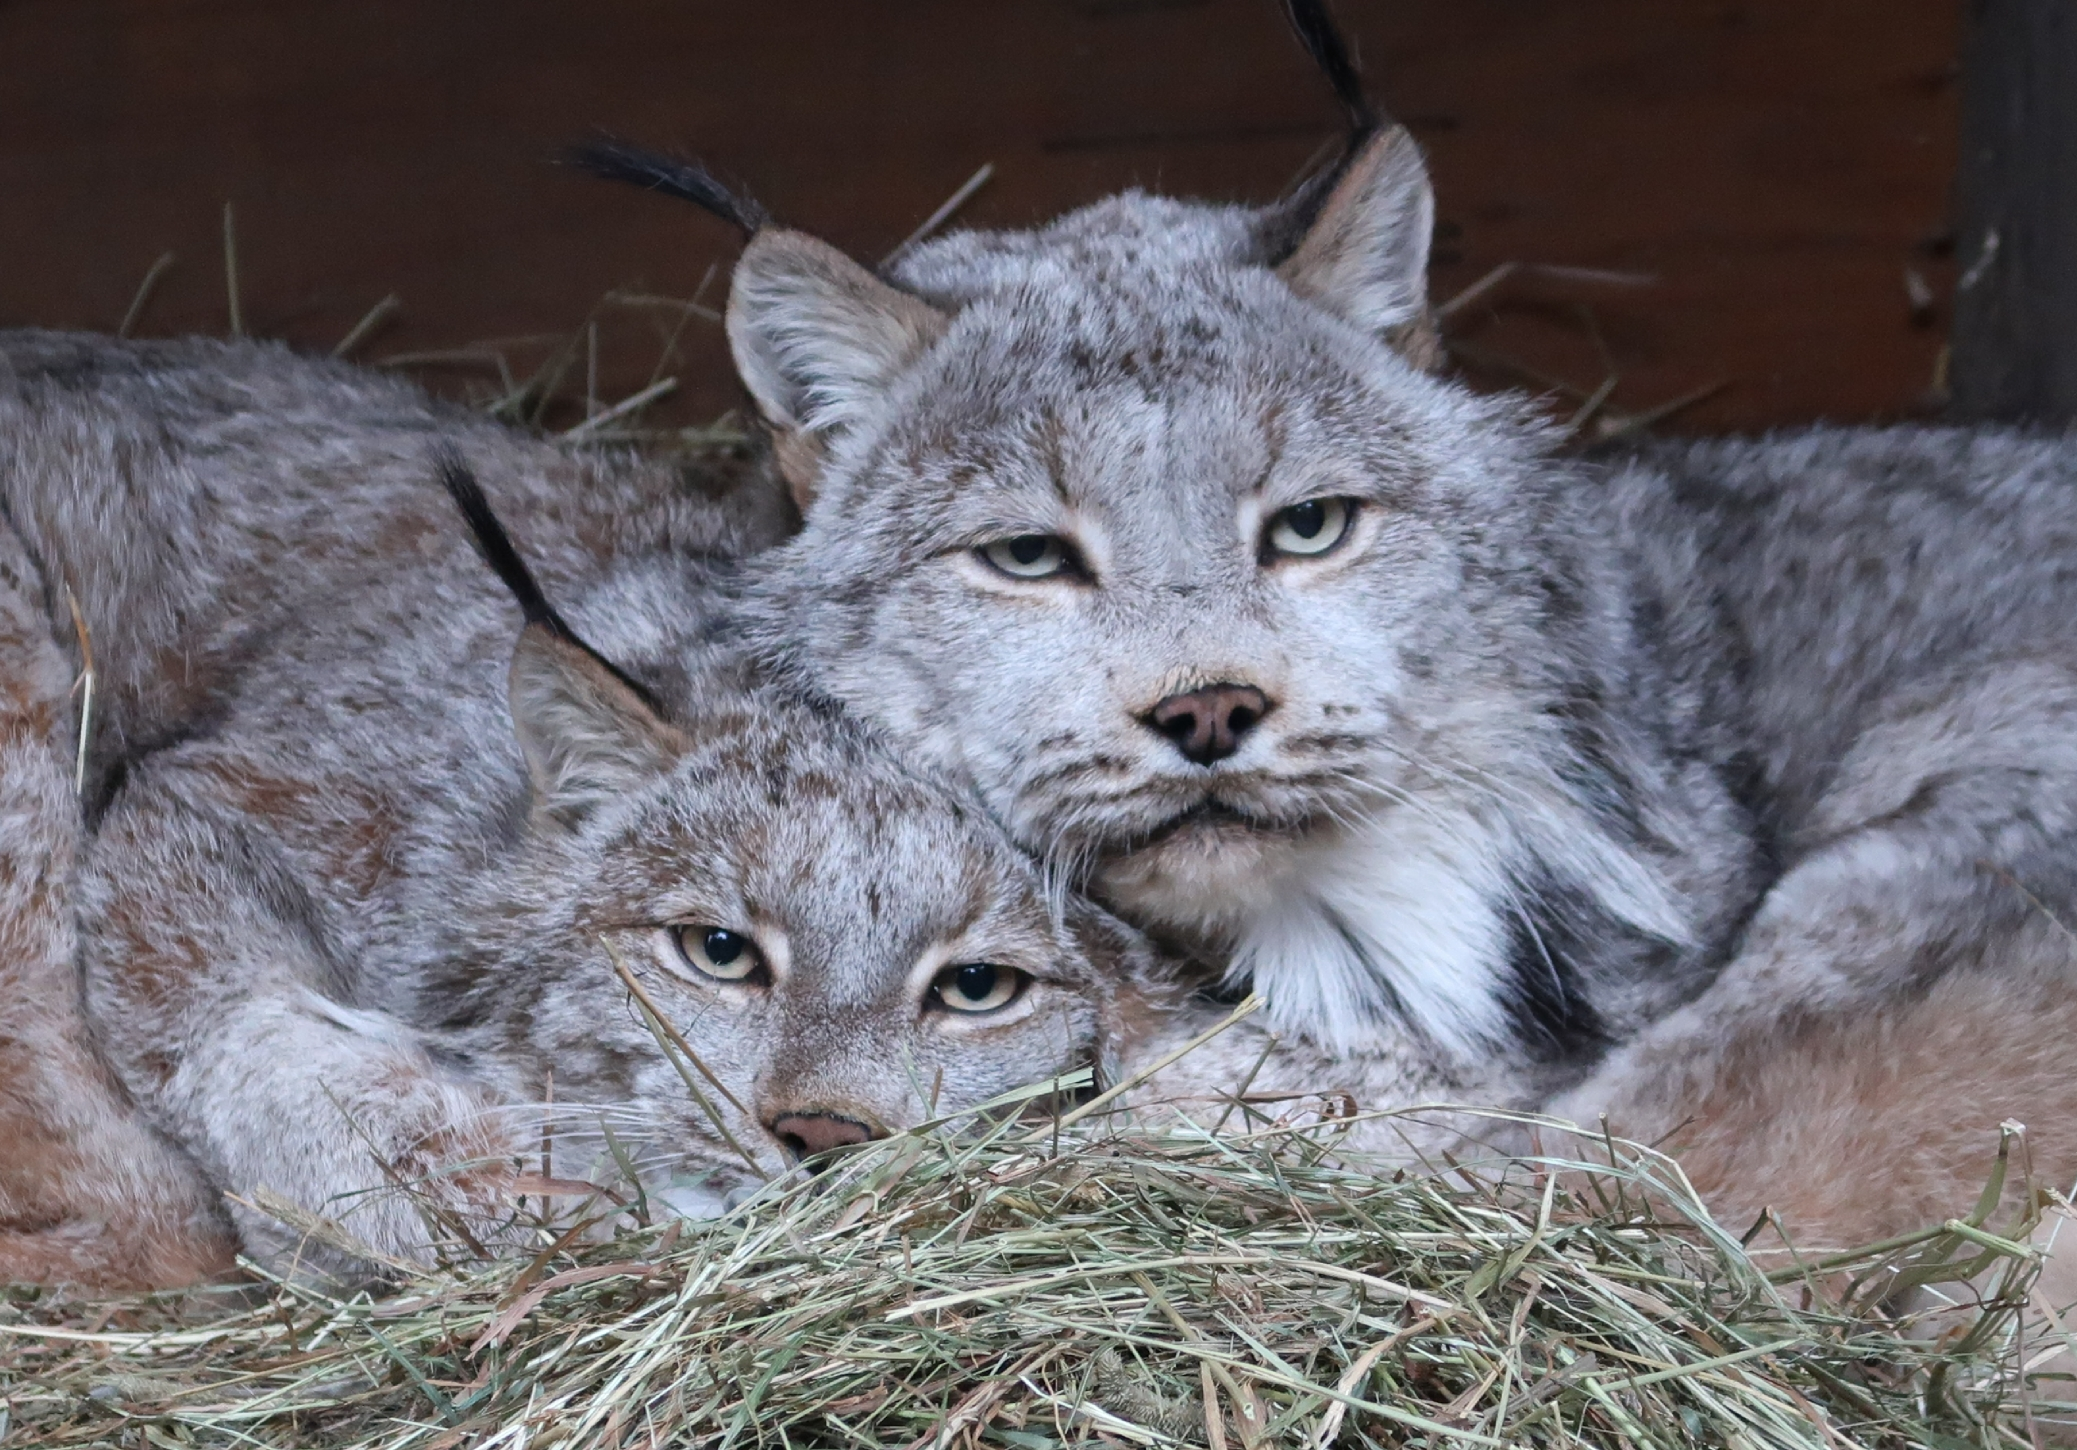 Calagary, Pictured On The Right, Snuggling In An Elevated Den Box With His Mate, Sylvie. Picture Courtesy Of Bpzoo